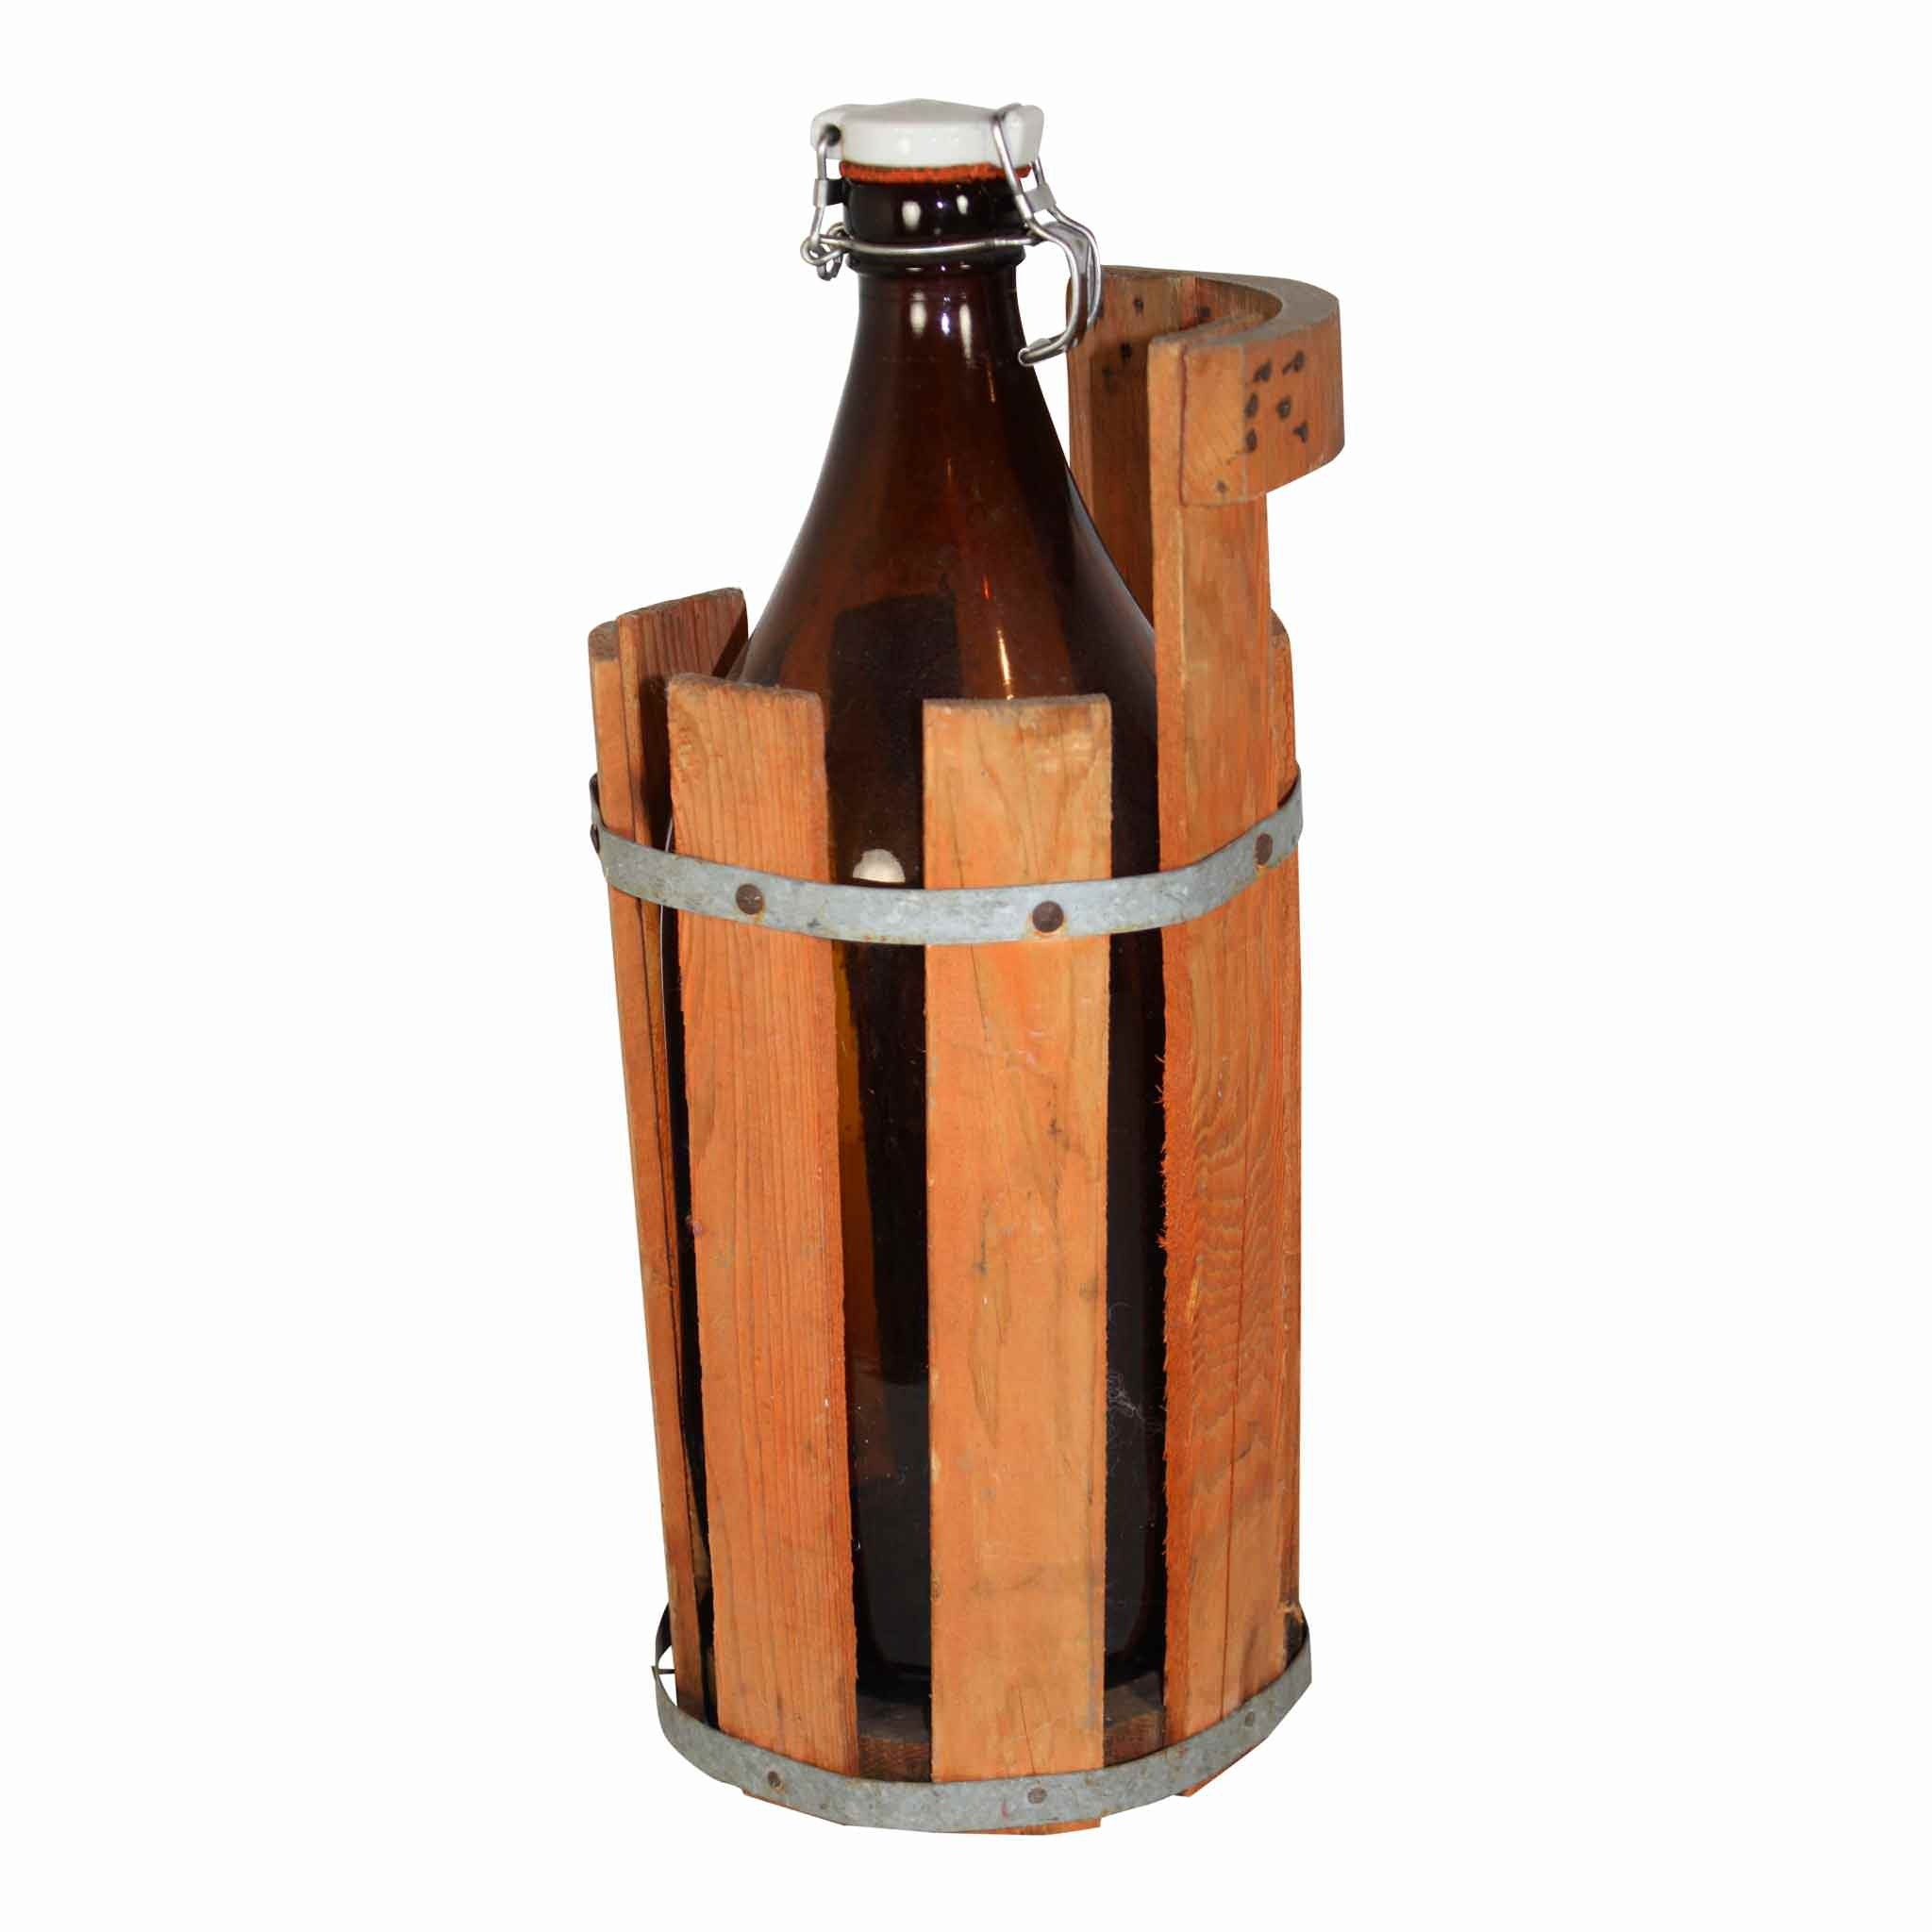 Swedish Beer Bottle in Wood Bucket